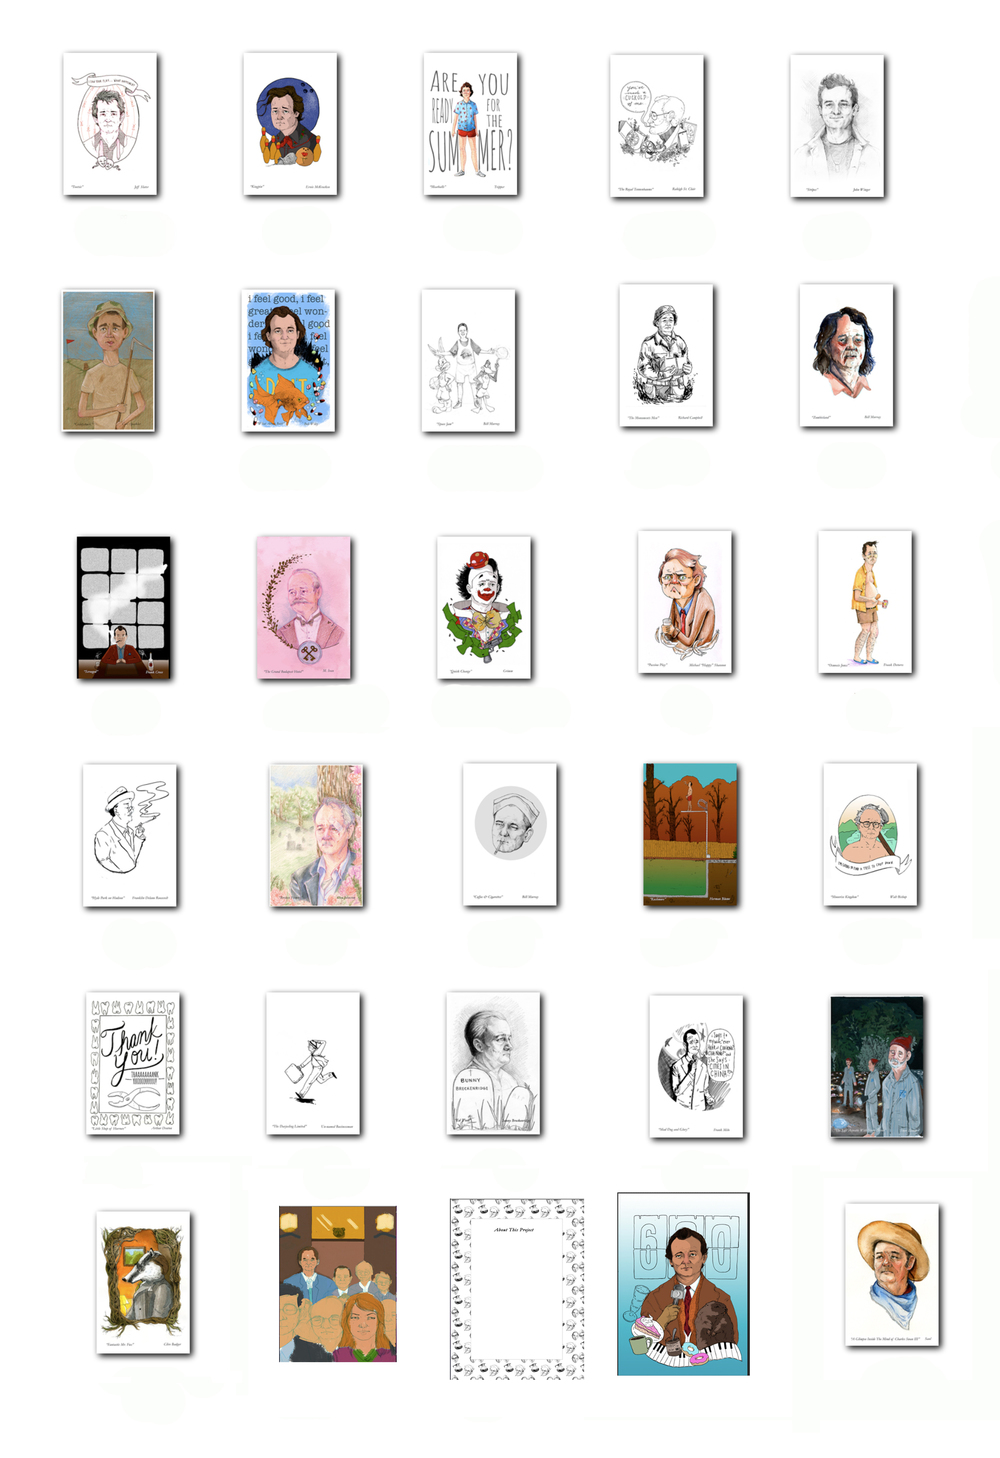 A preview of all 31 pieces that will be going into the book.